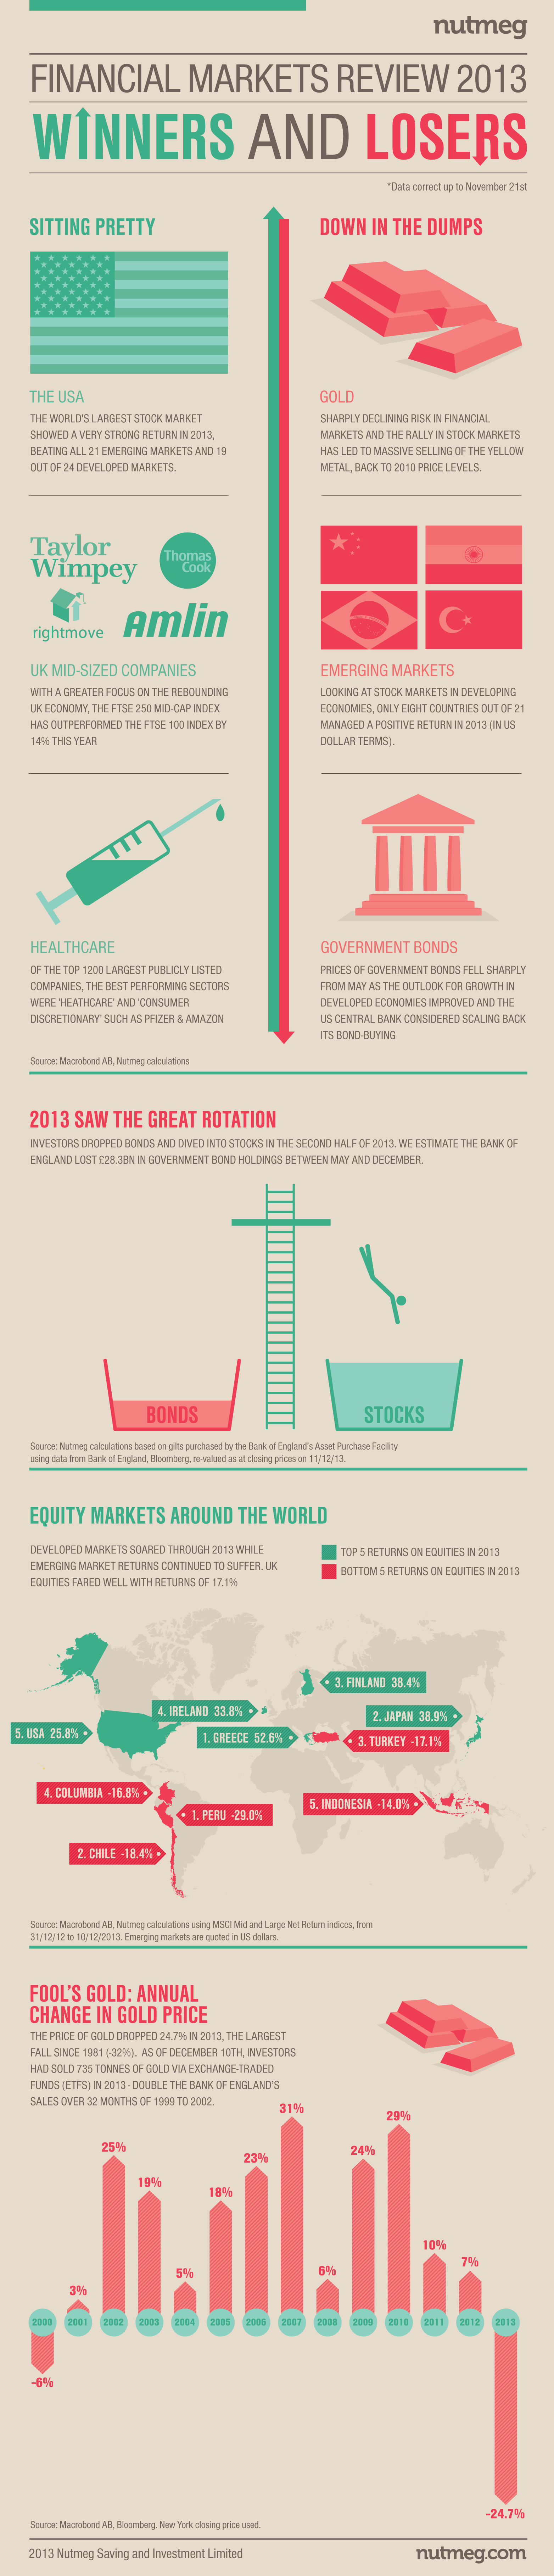 Nutmeg investment review - the winners and losers of 2013